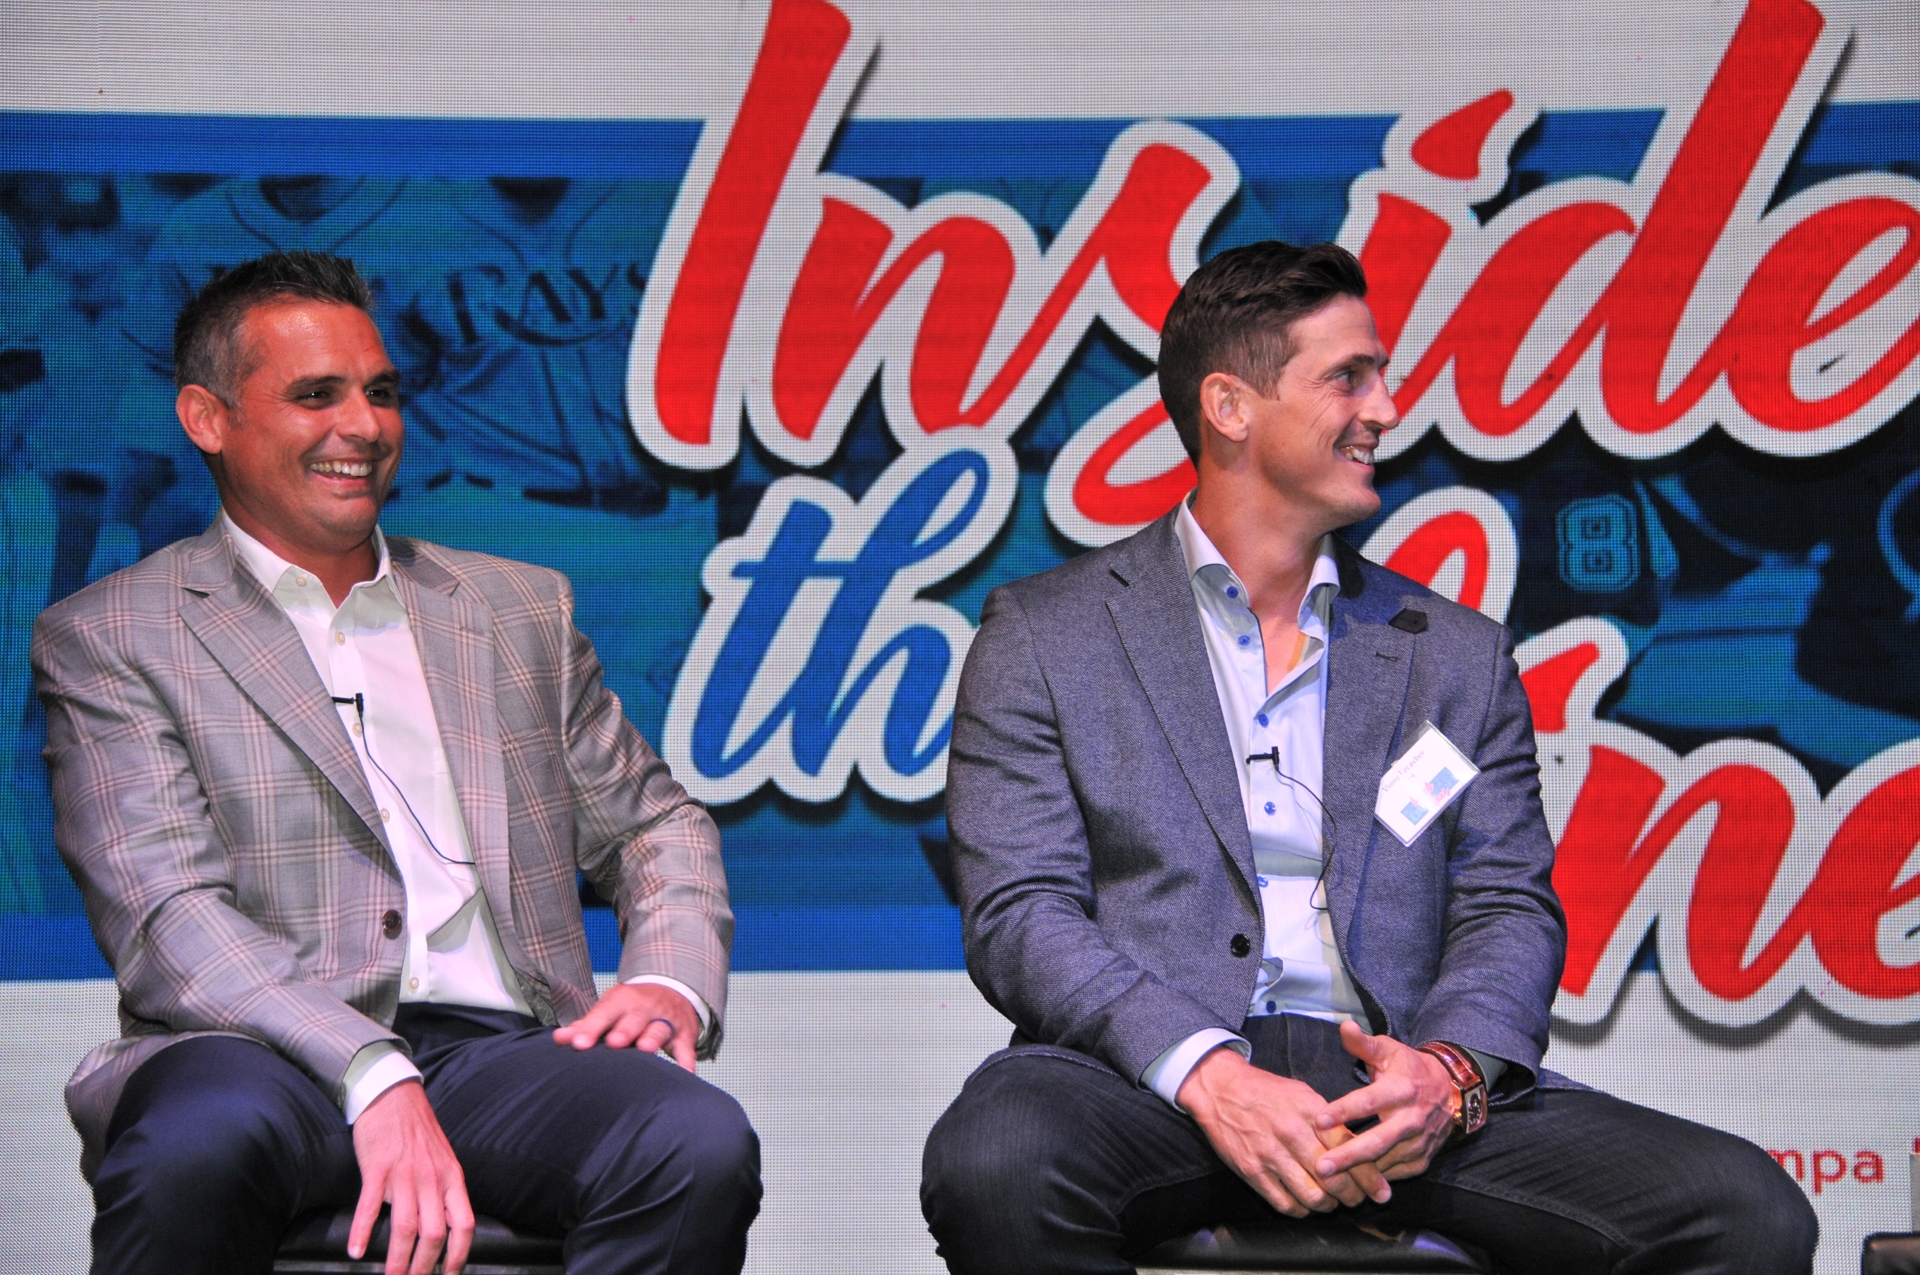 Panel discussion between guests, Kevin Cash and Vinny Lecavalier